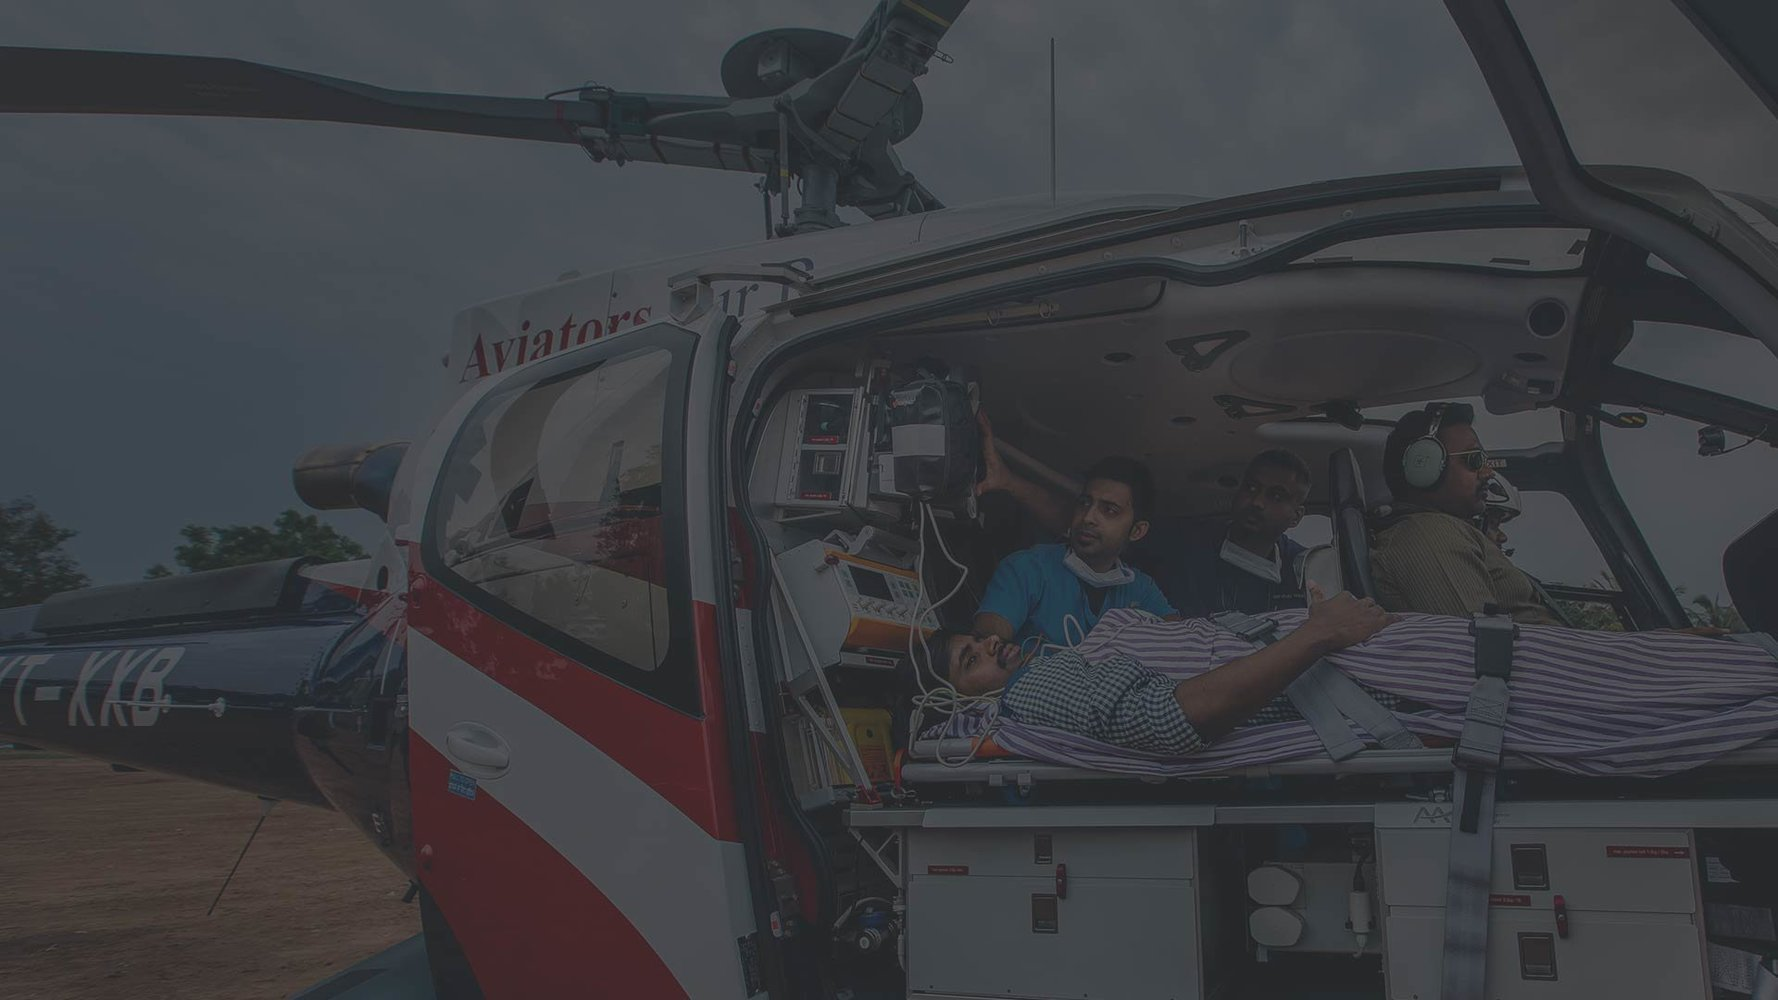 Air Rescue Service for Emergencies